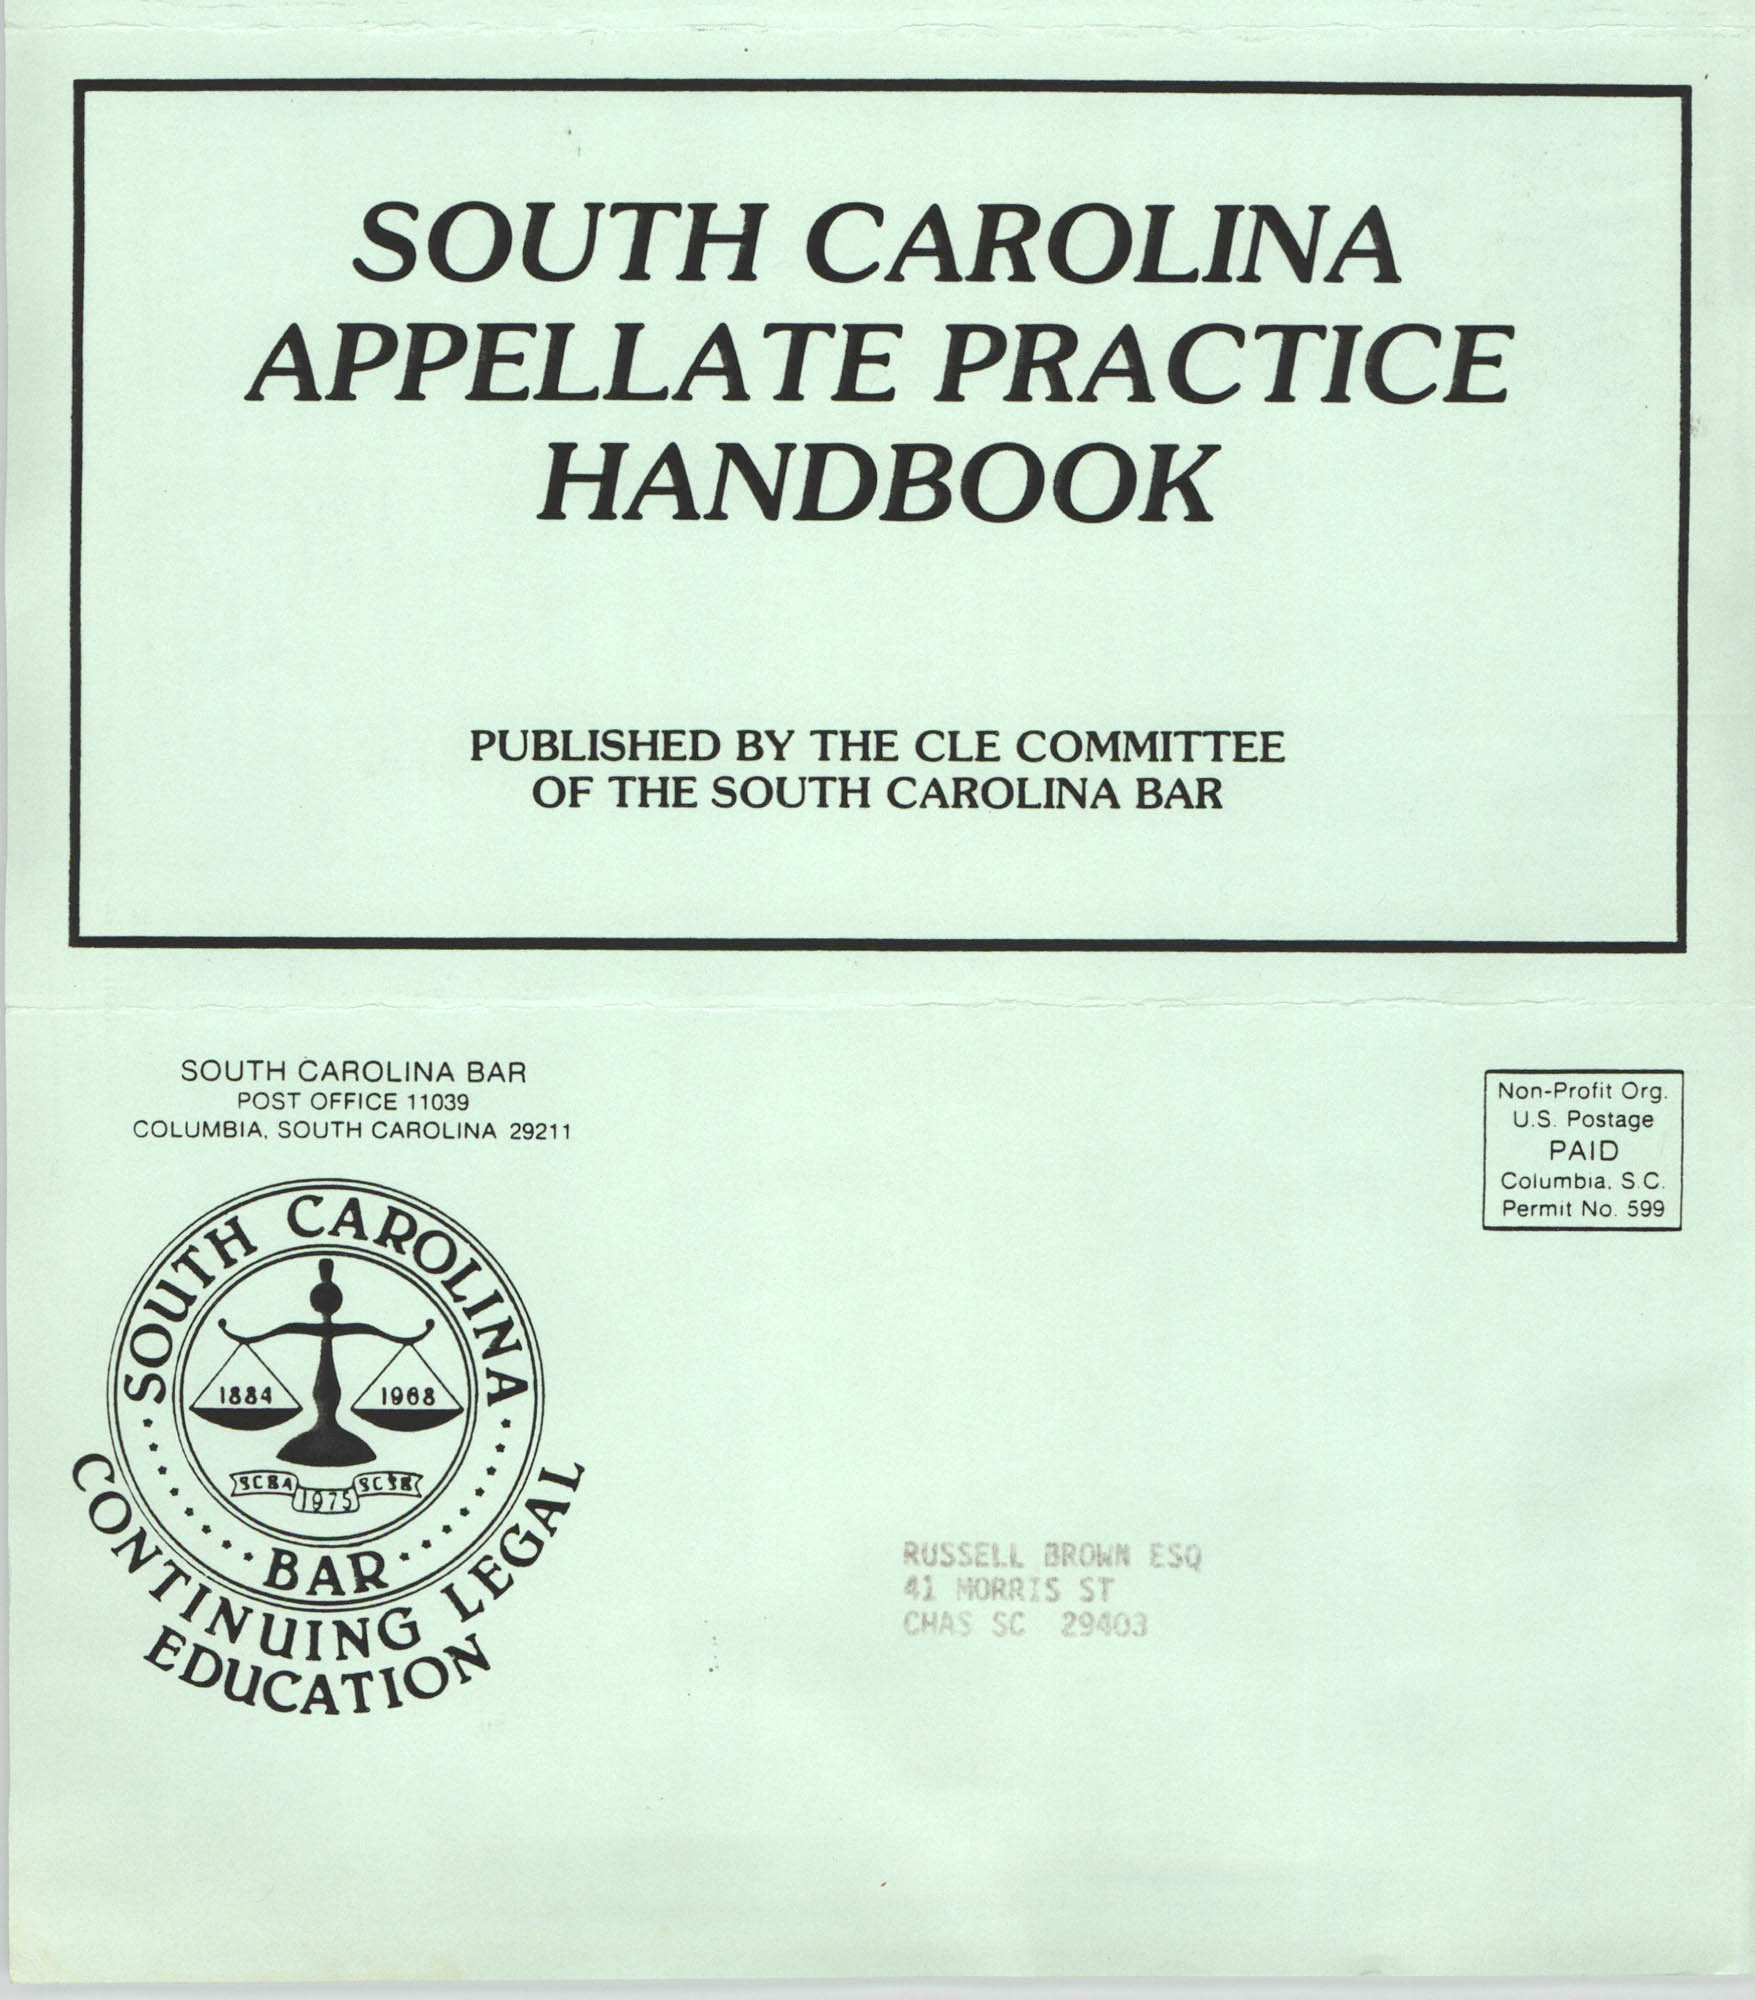 South Carolina Appellate Practice Handbook Pamphlet, Continuing Legal Education Committee of the South Carolina Bar, Russell Brown